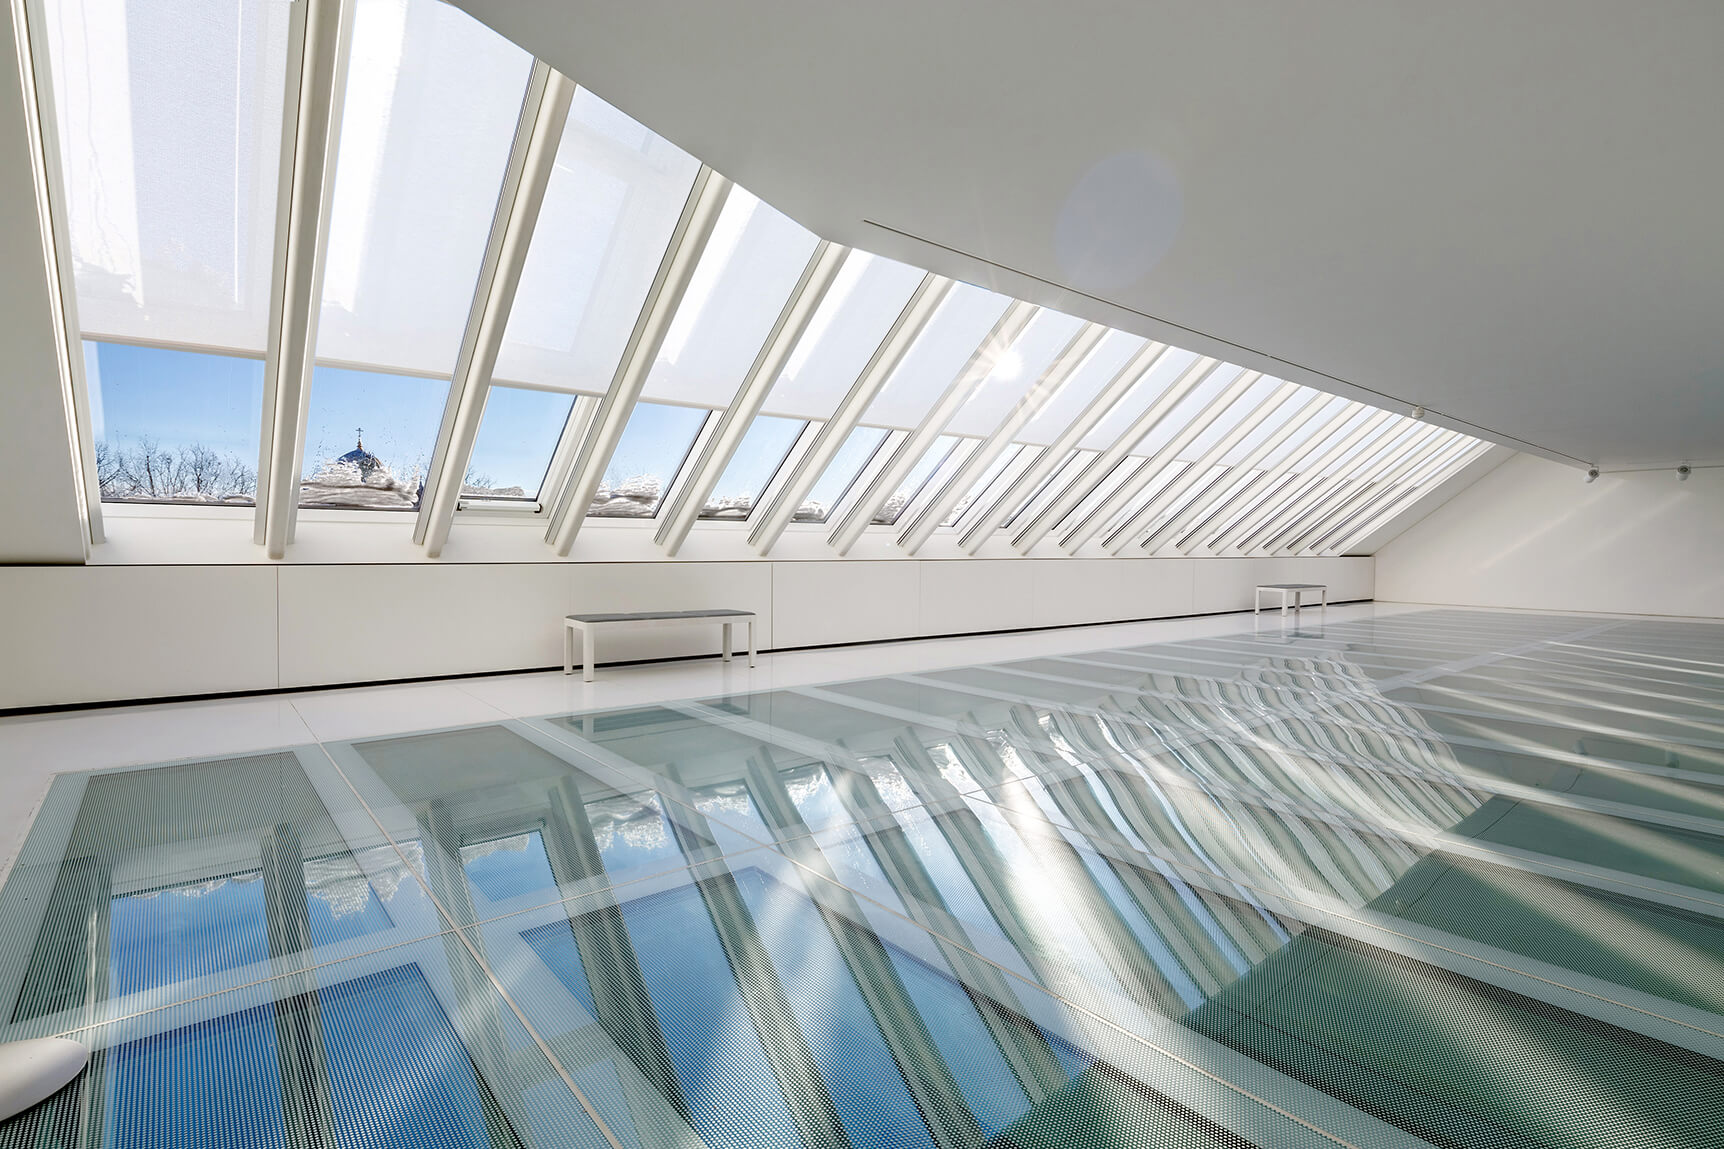 Daylighting Exhibition Space In Museums And Galleries